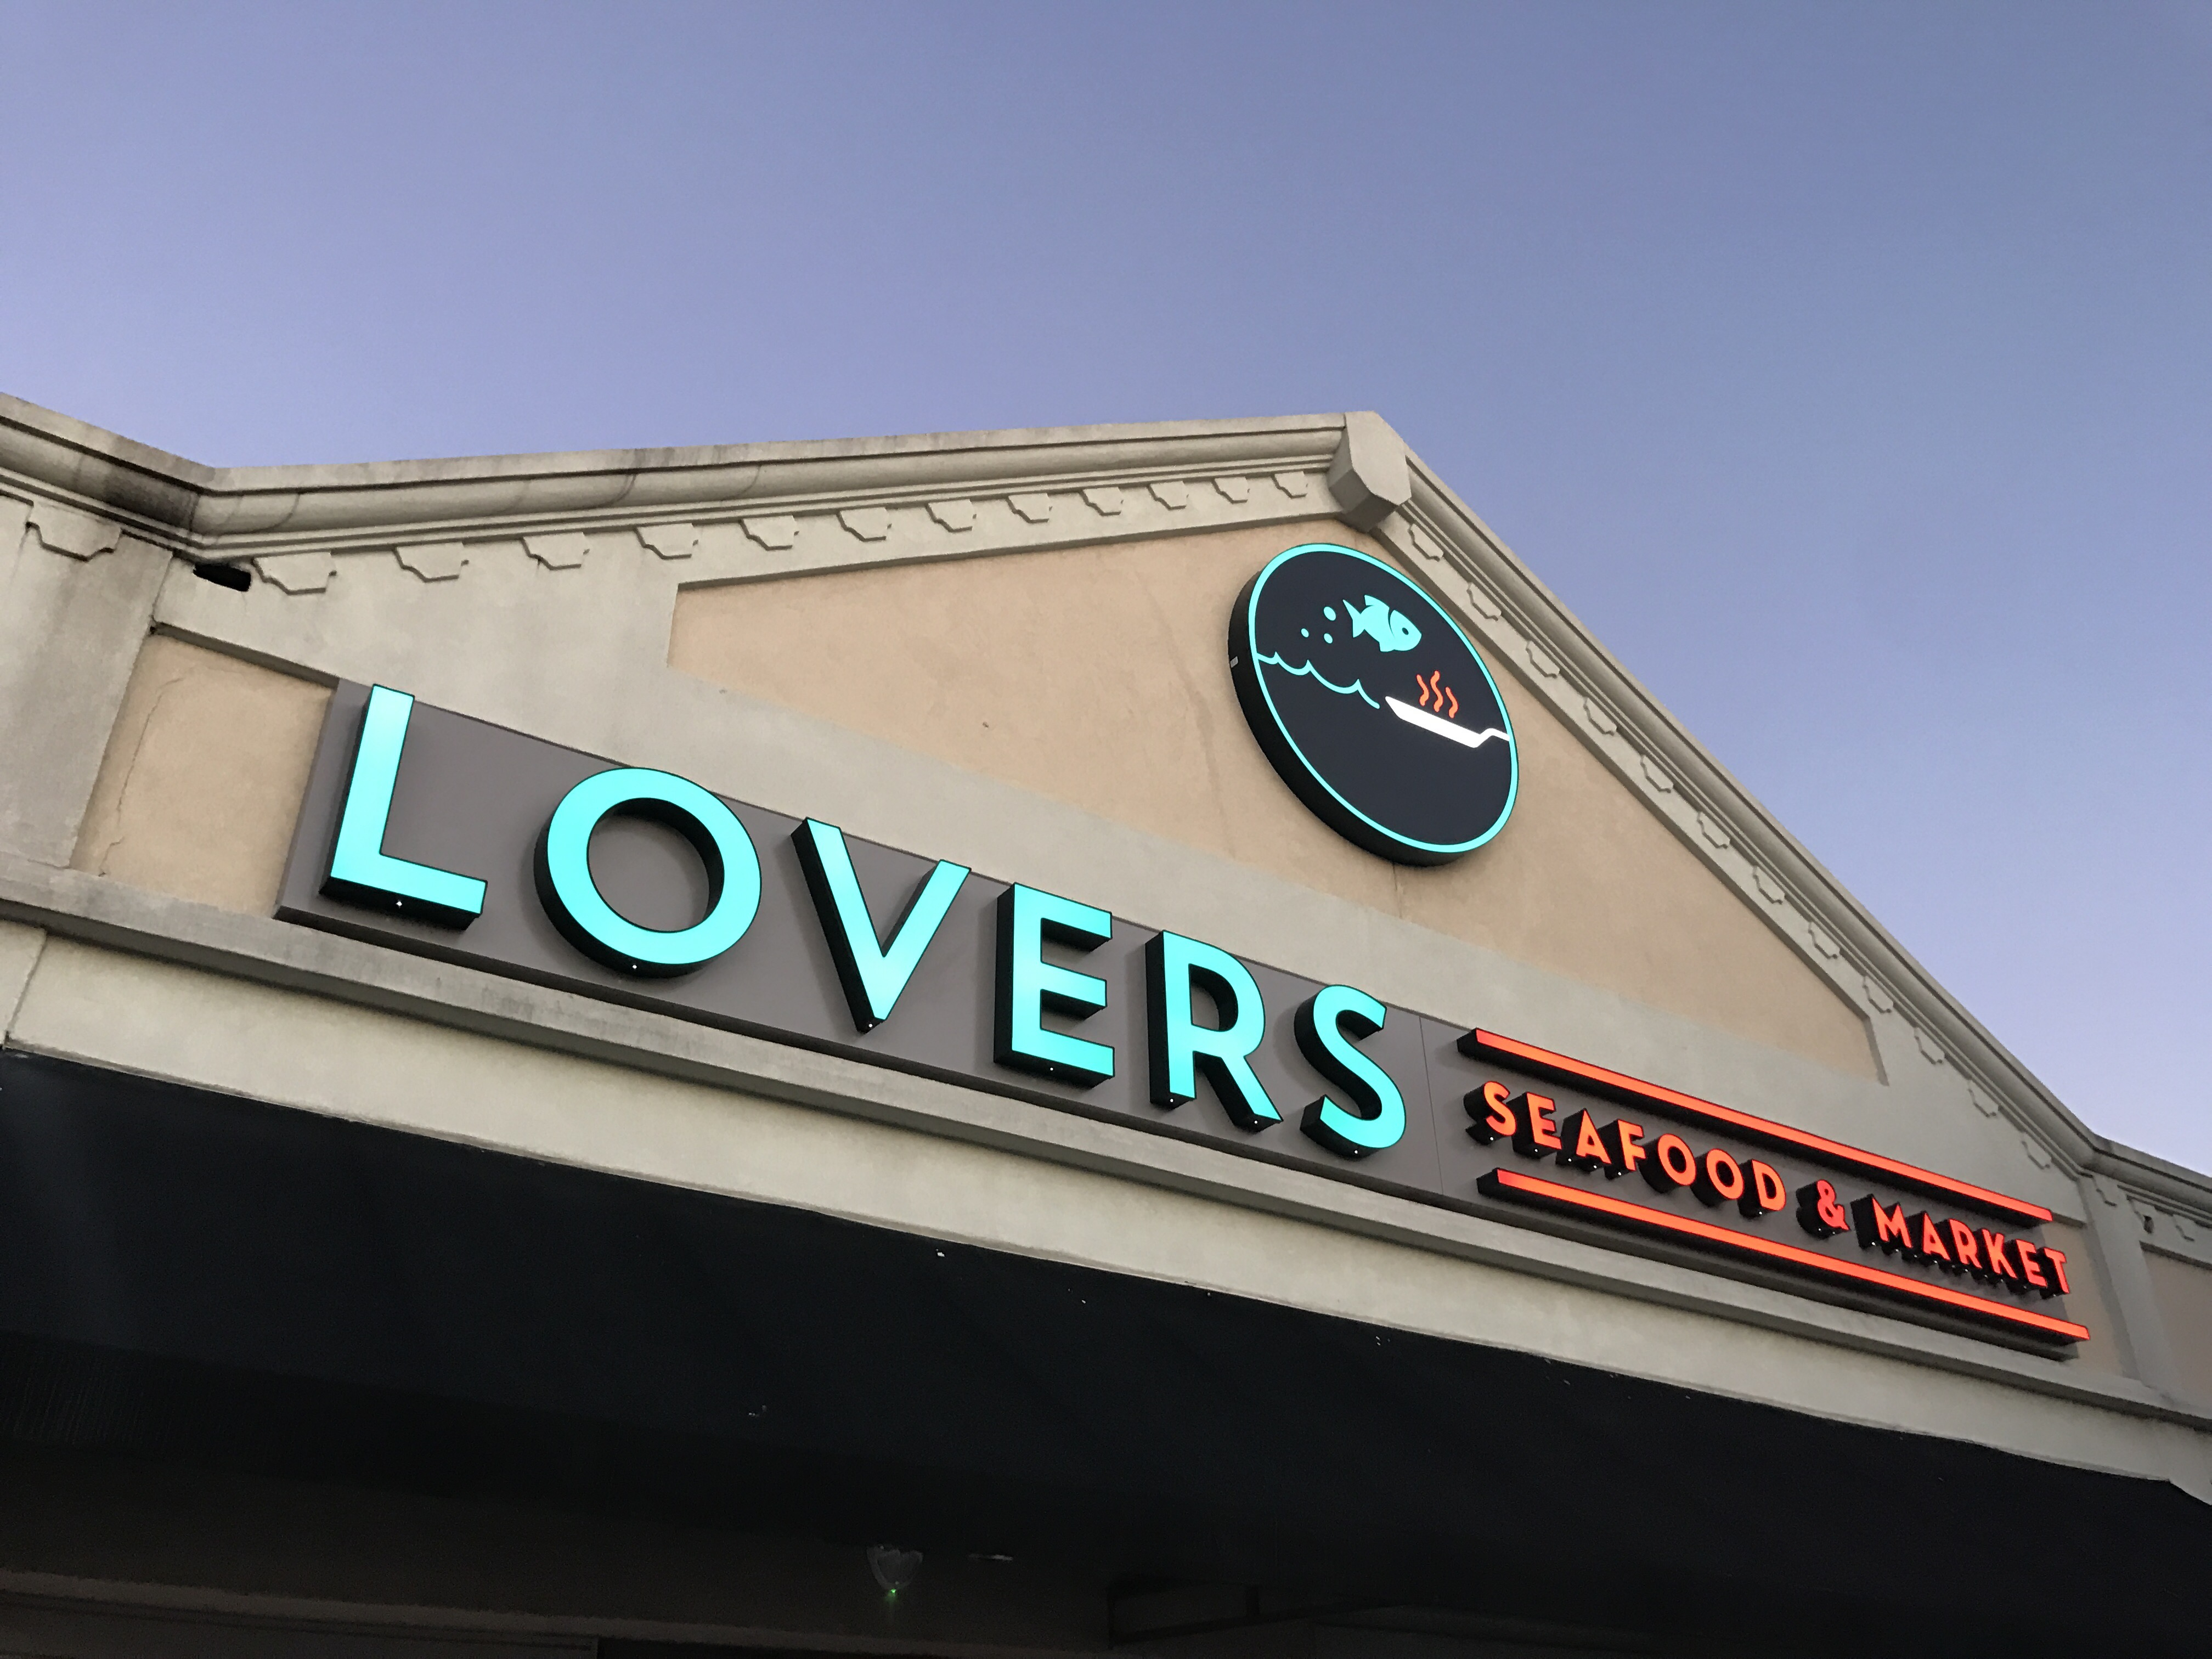 Lovers seafood and market dallas menu